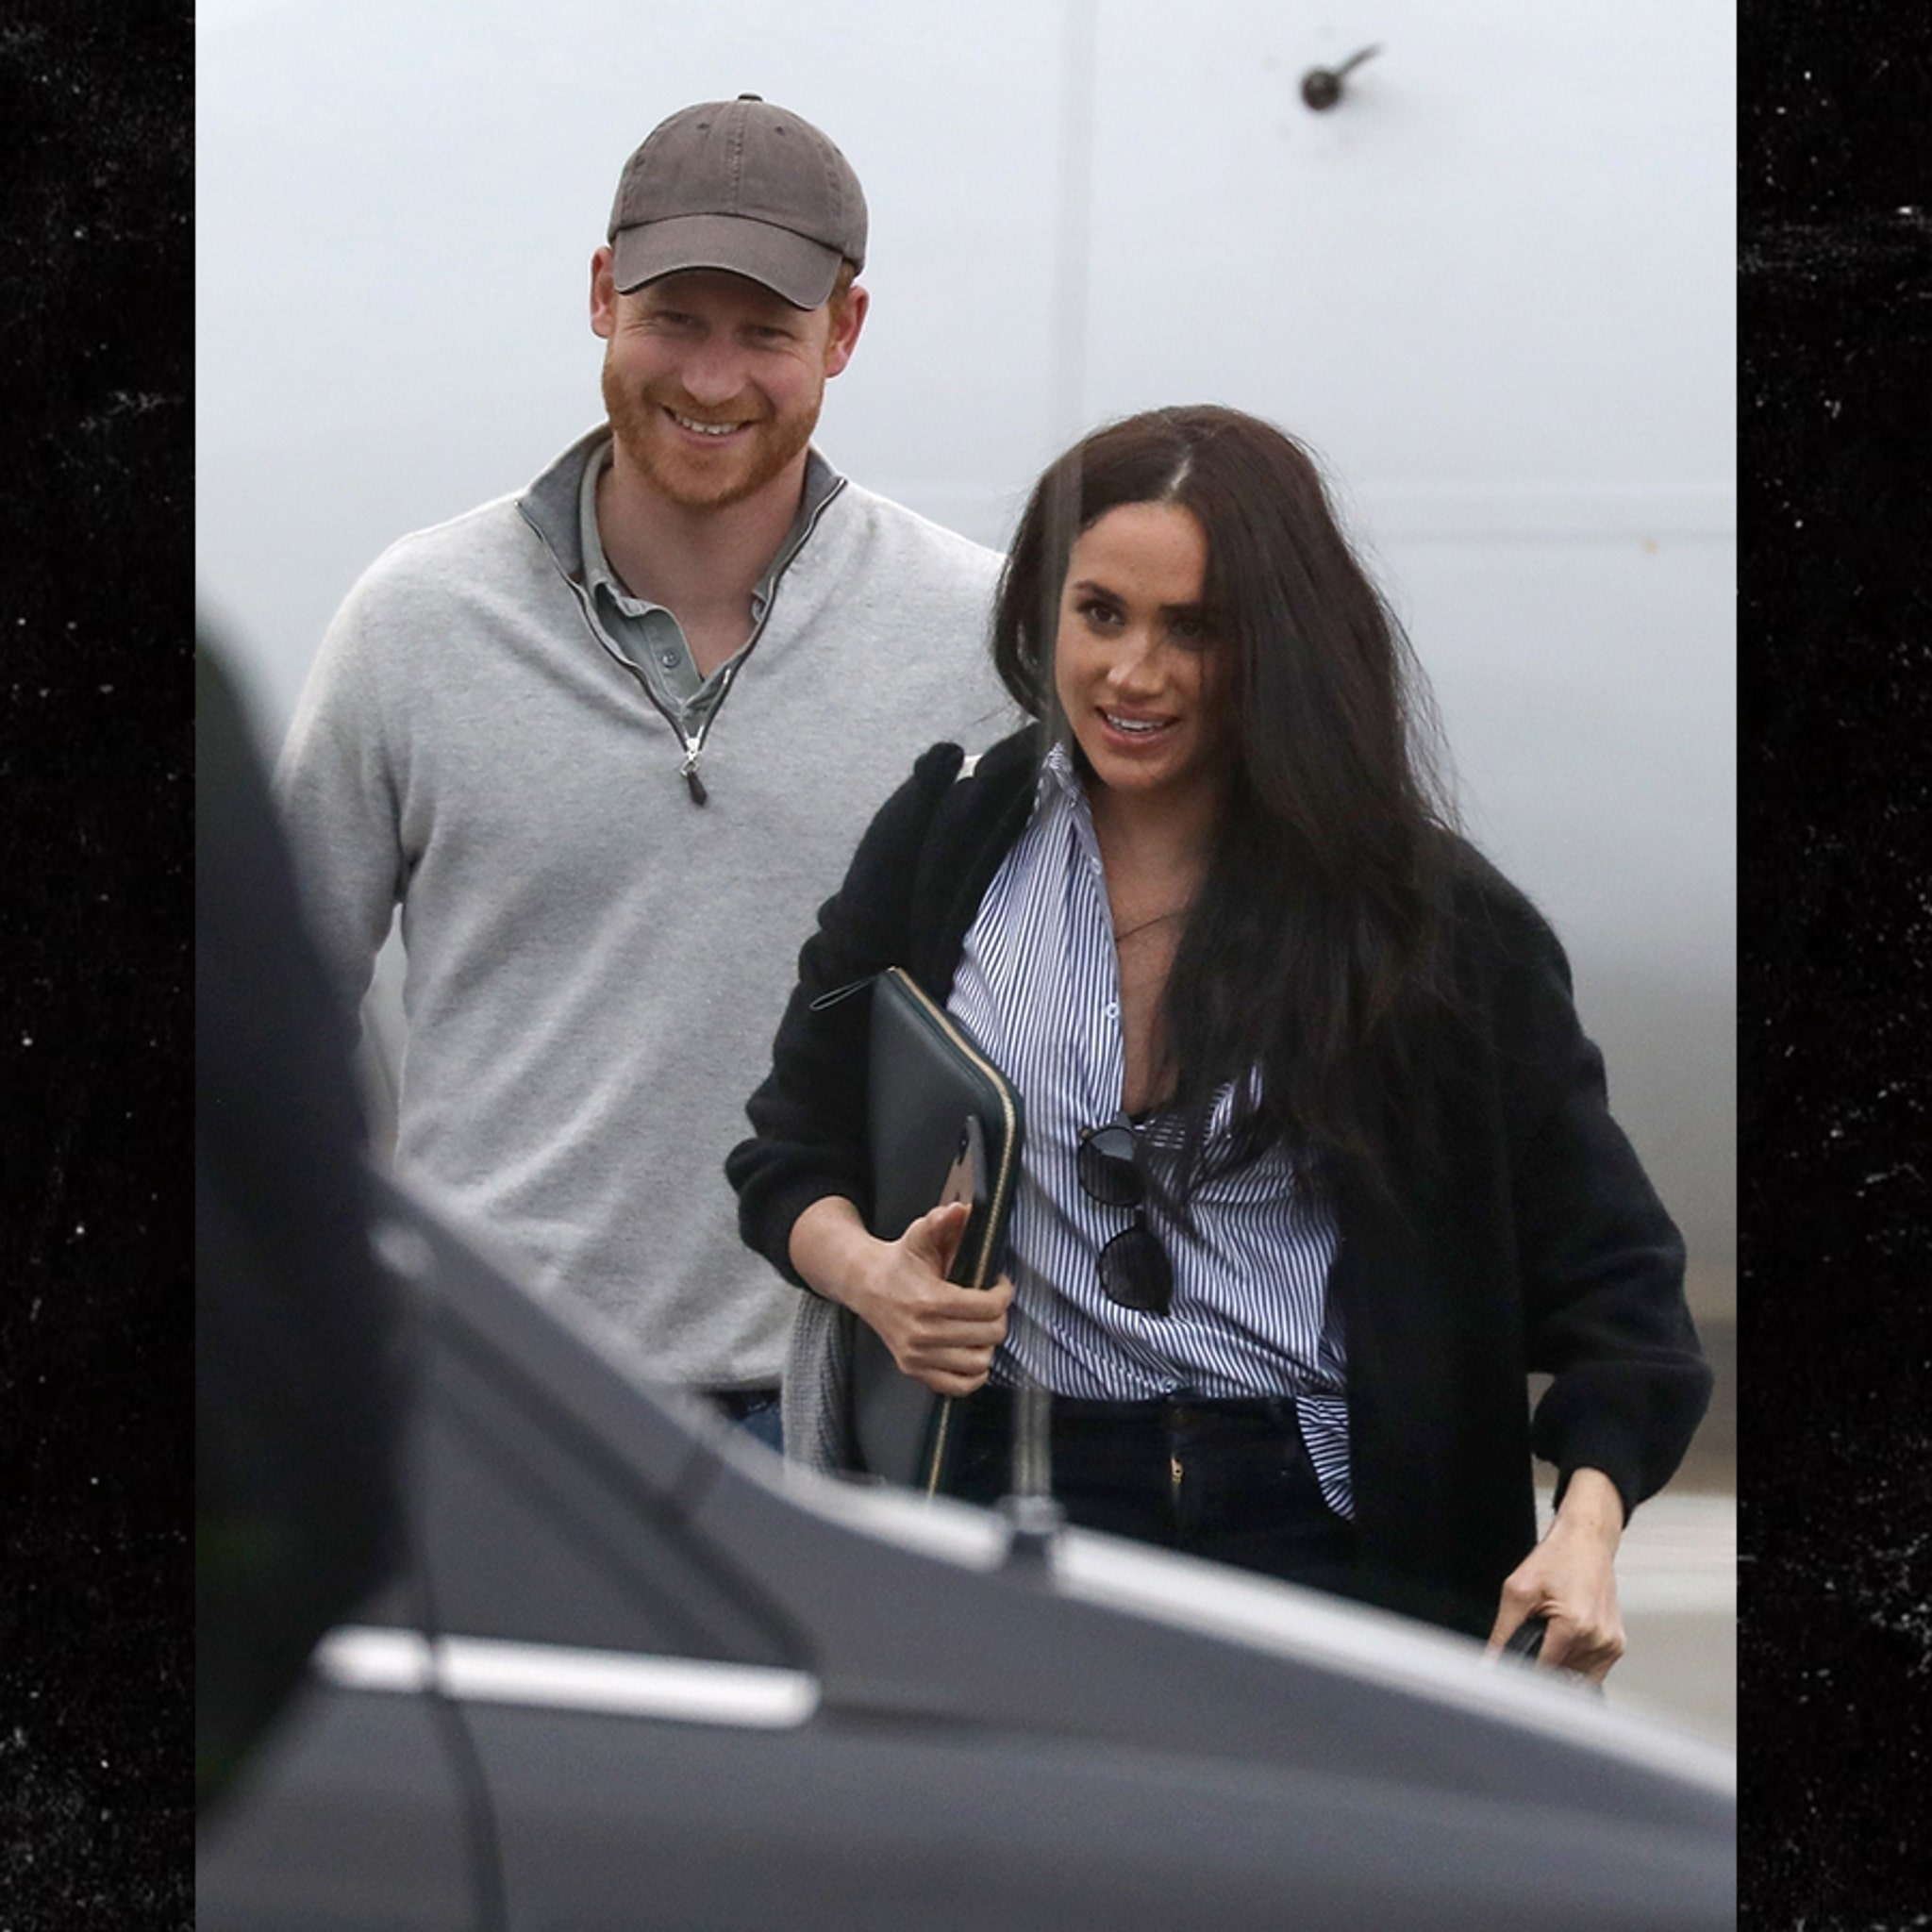 meghan markle and prince harry all smiles after california trip meghan markle and prince harry all